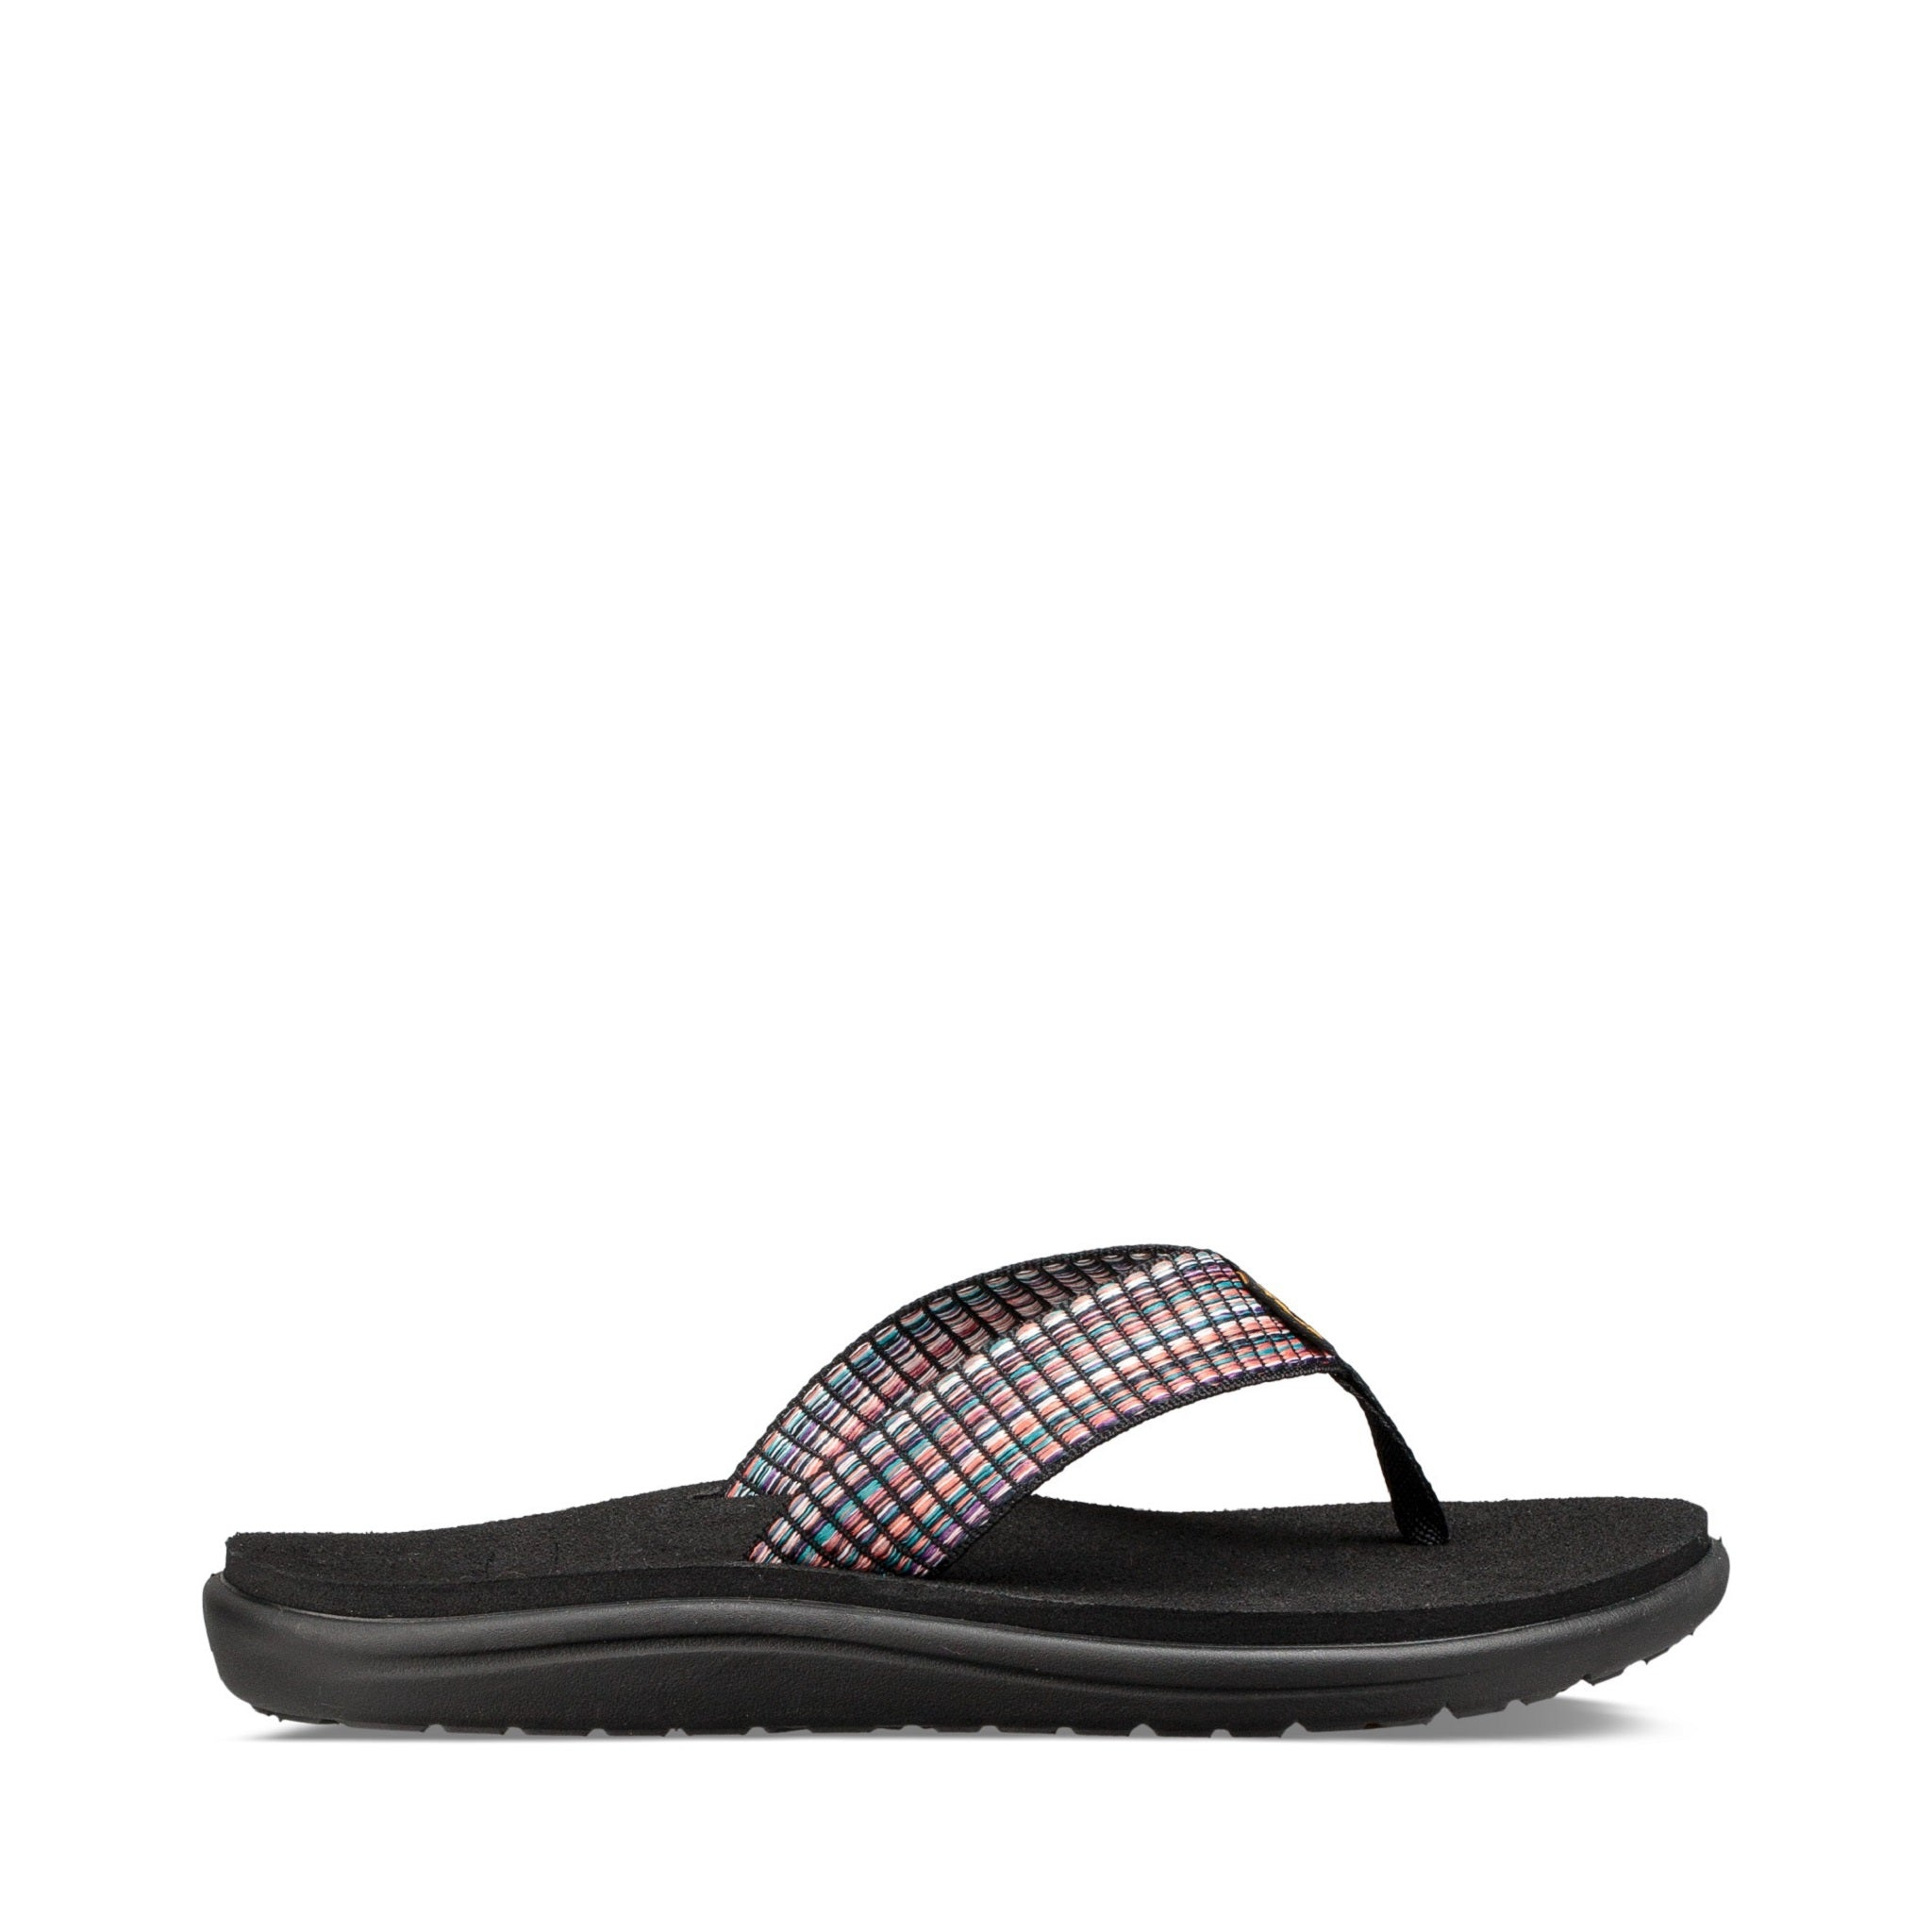 TEVA - LADIES VOYA FLIP